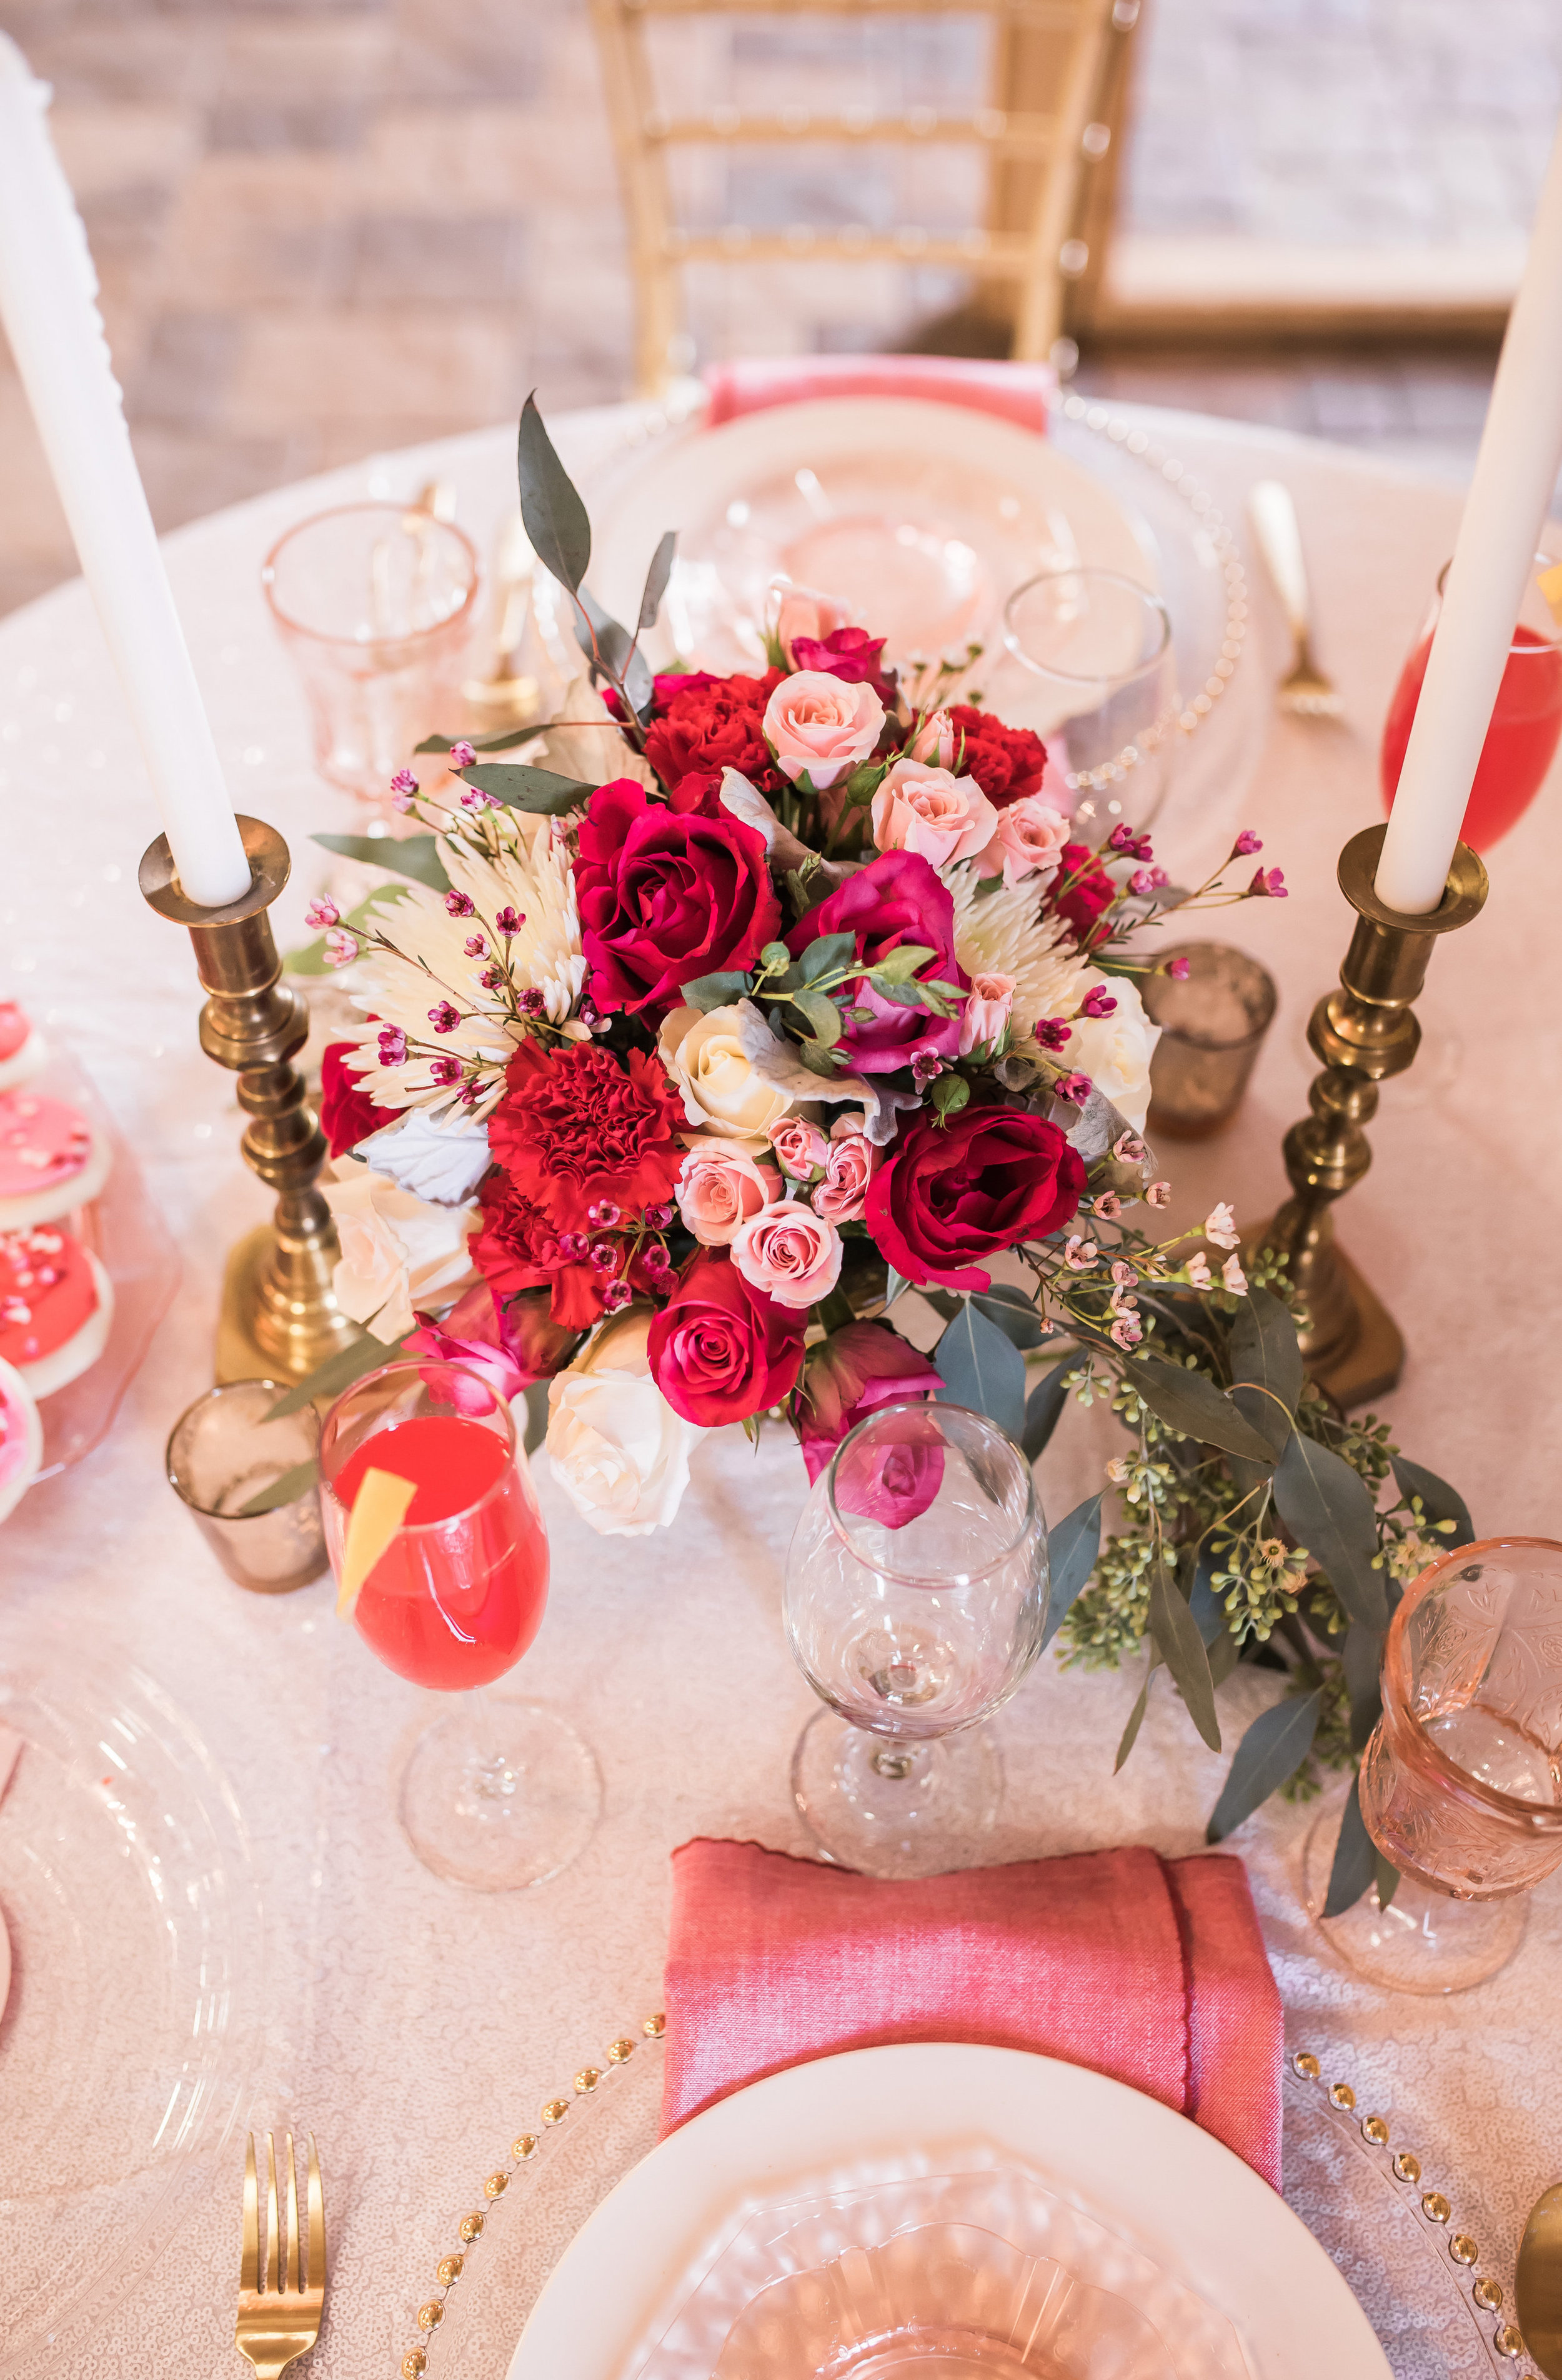 Valentine's Styled Shoot @ Highland-0018.jpg